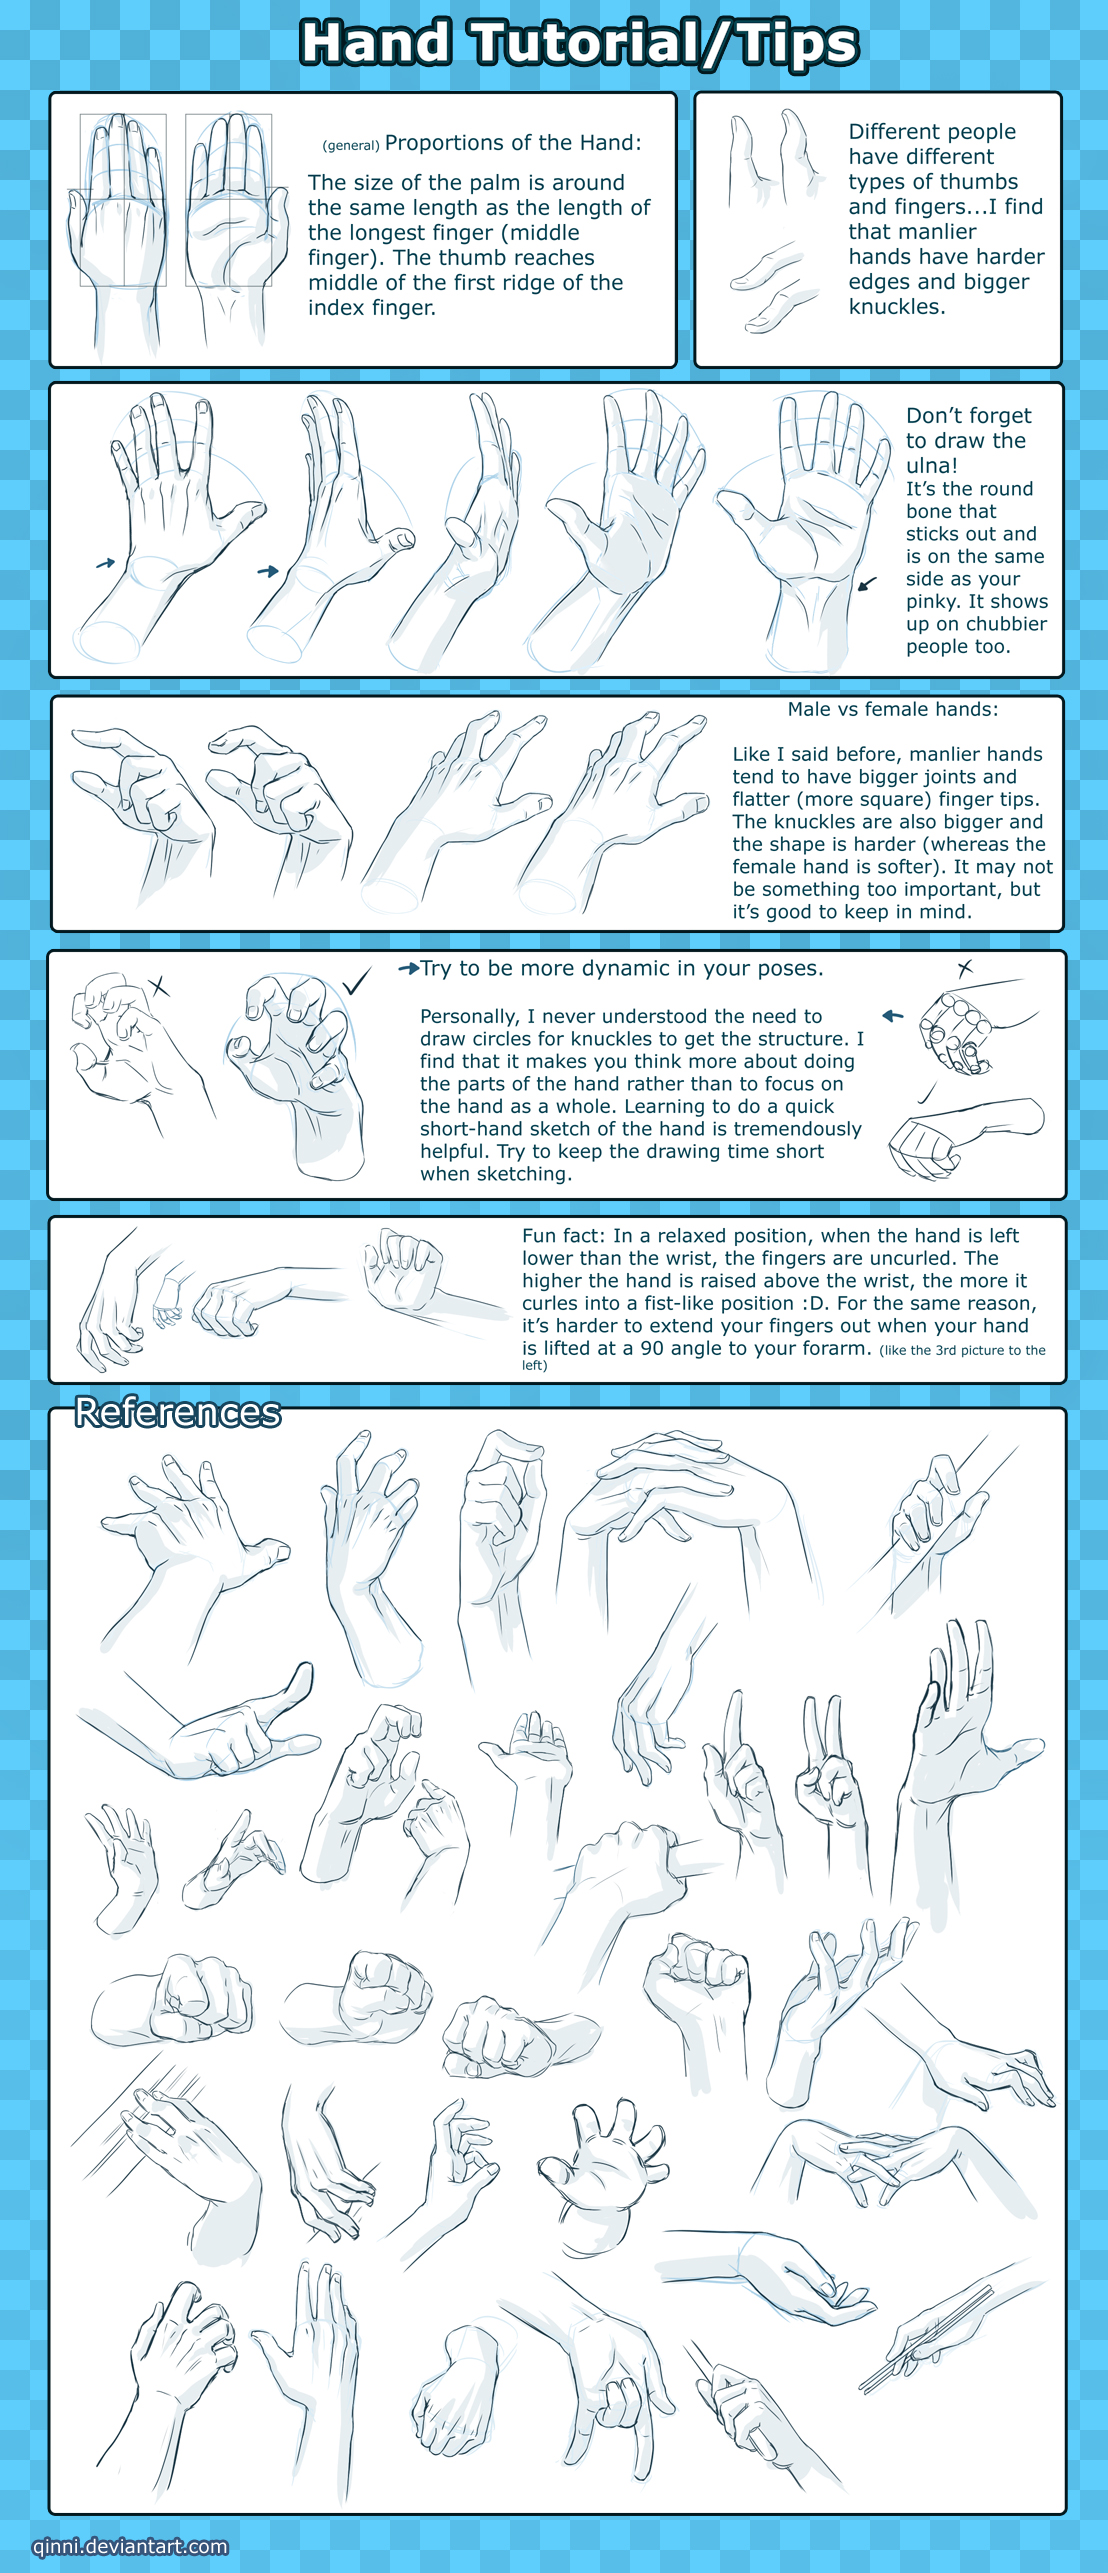 Hand tutorial tips reference by qinni